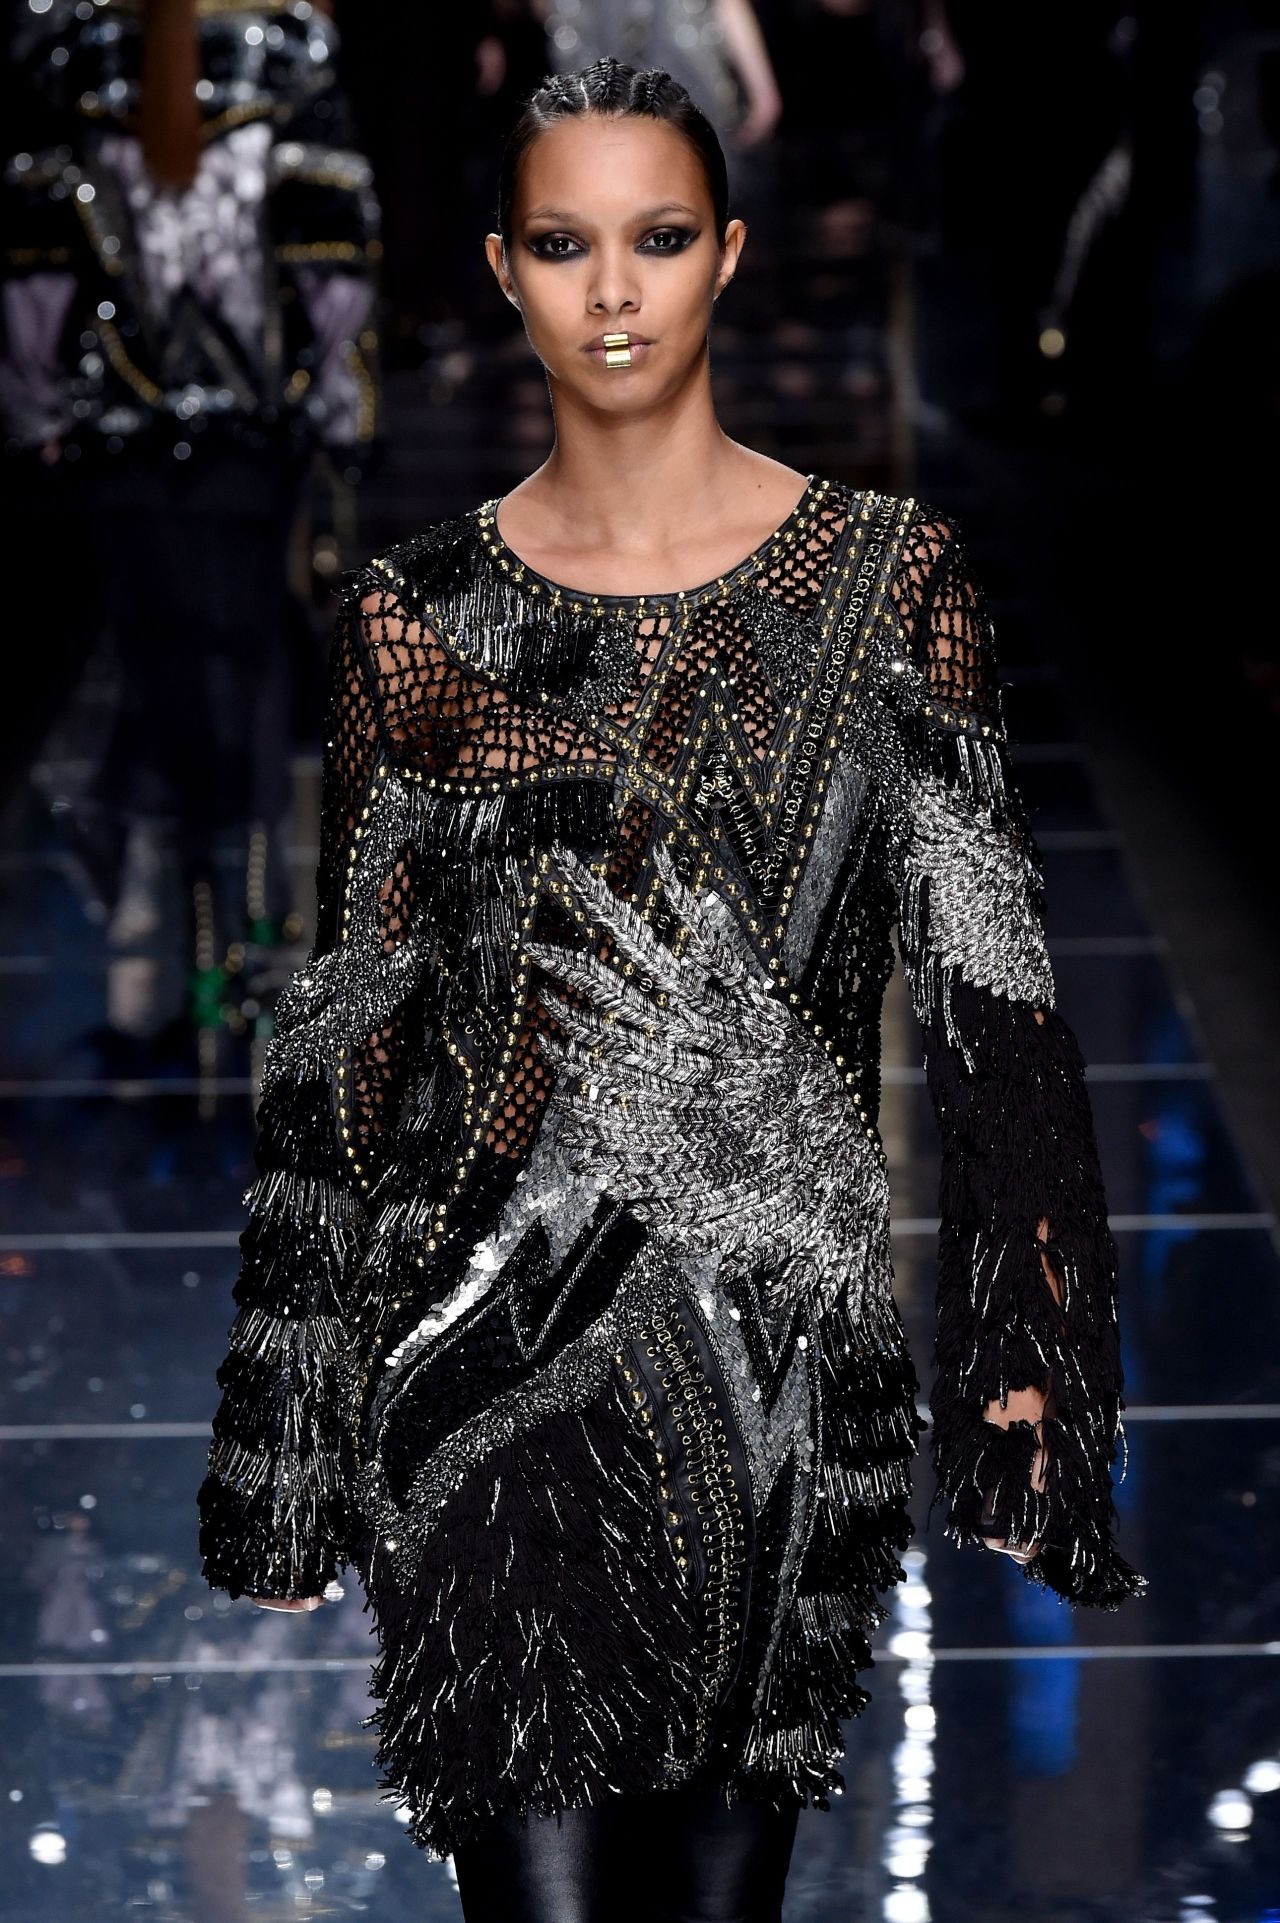 Paris Fashion Week Street Style Spring 2015: Lais Ribeiro Walks Balmain Show At Paris Fashion Week 3/2